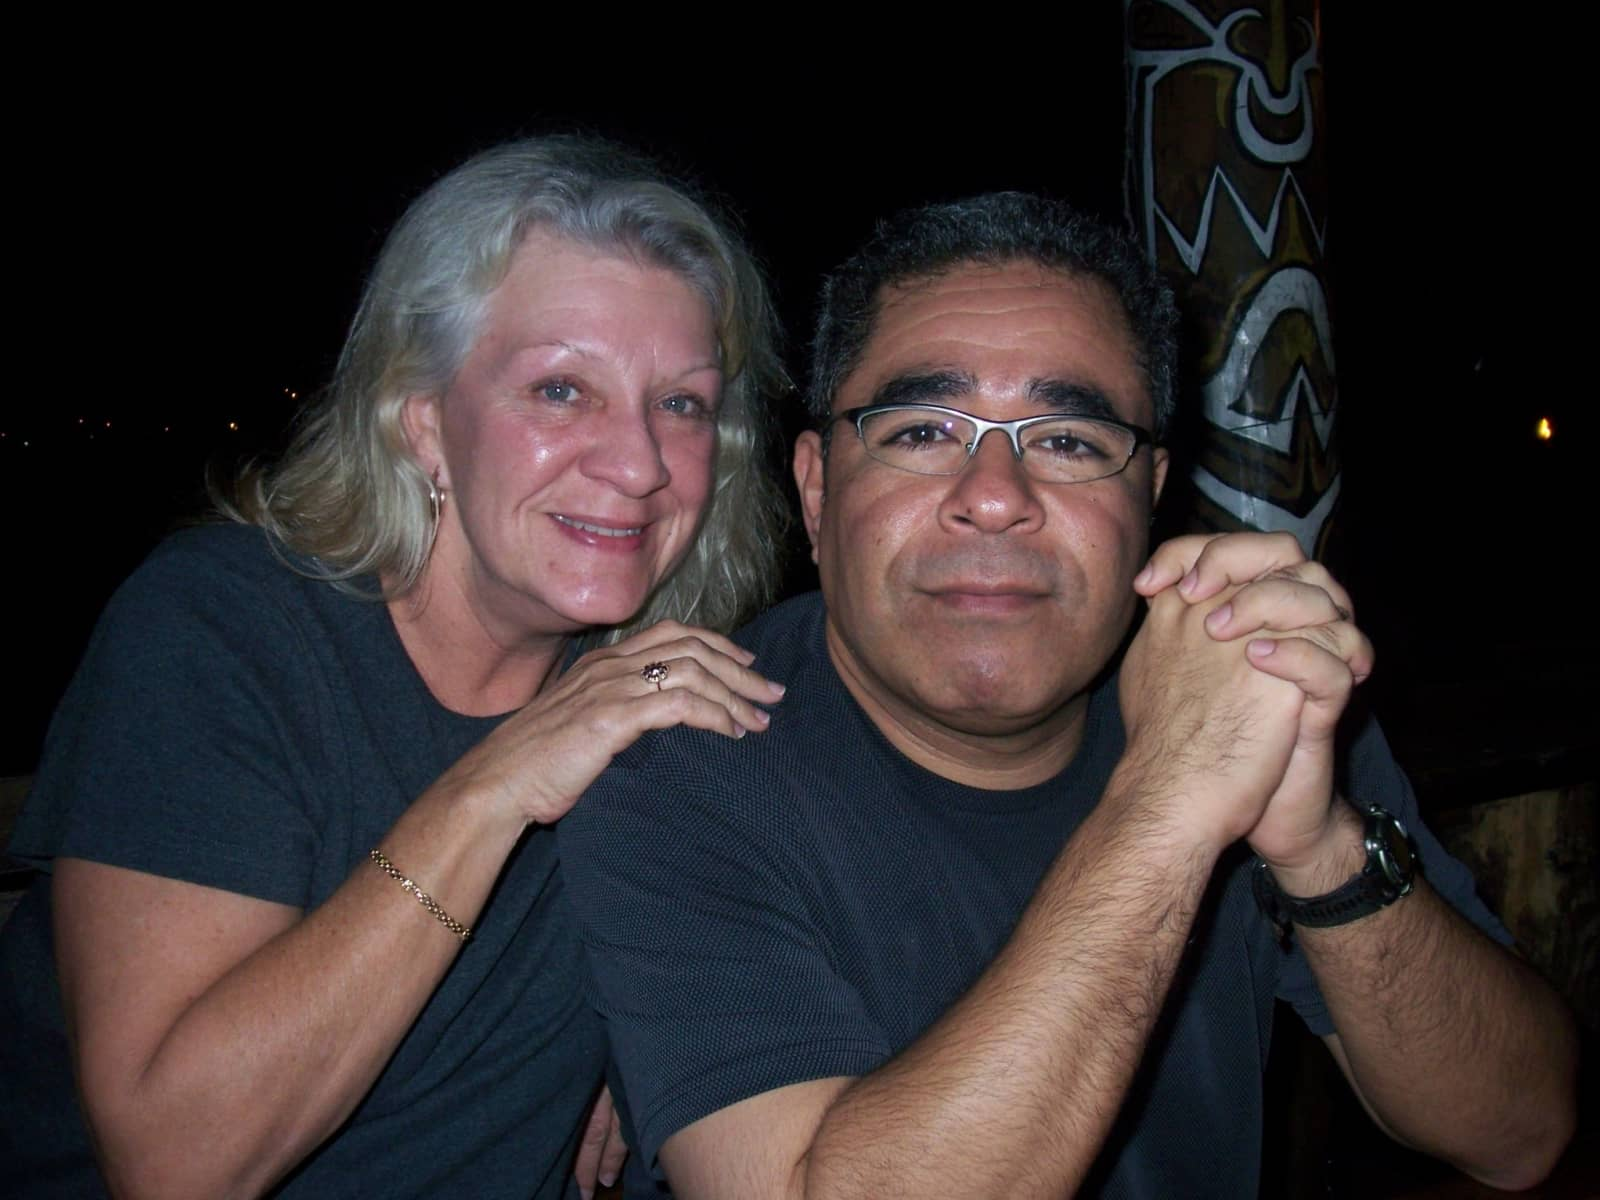 Lisa & Gerardo from Hallandale Beach, Florida, United States